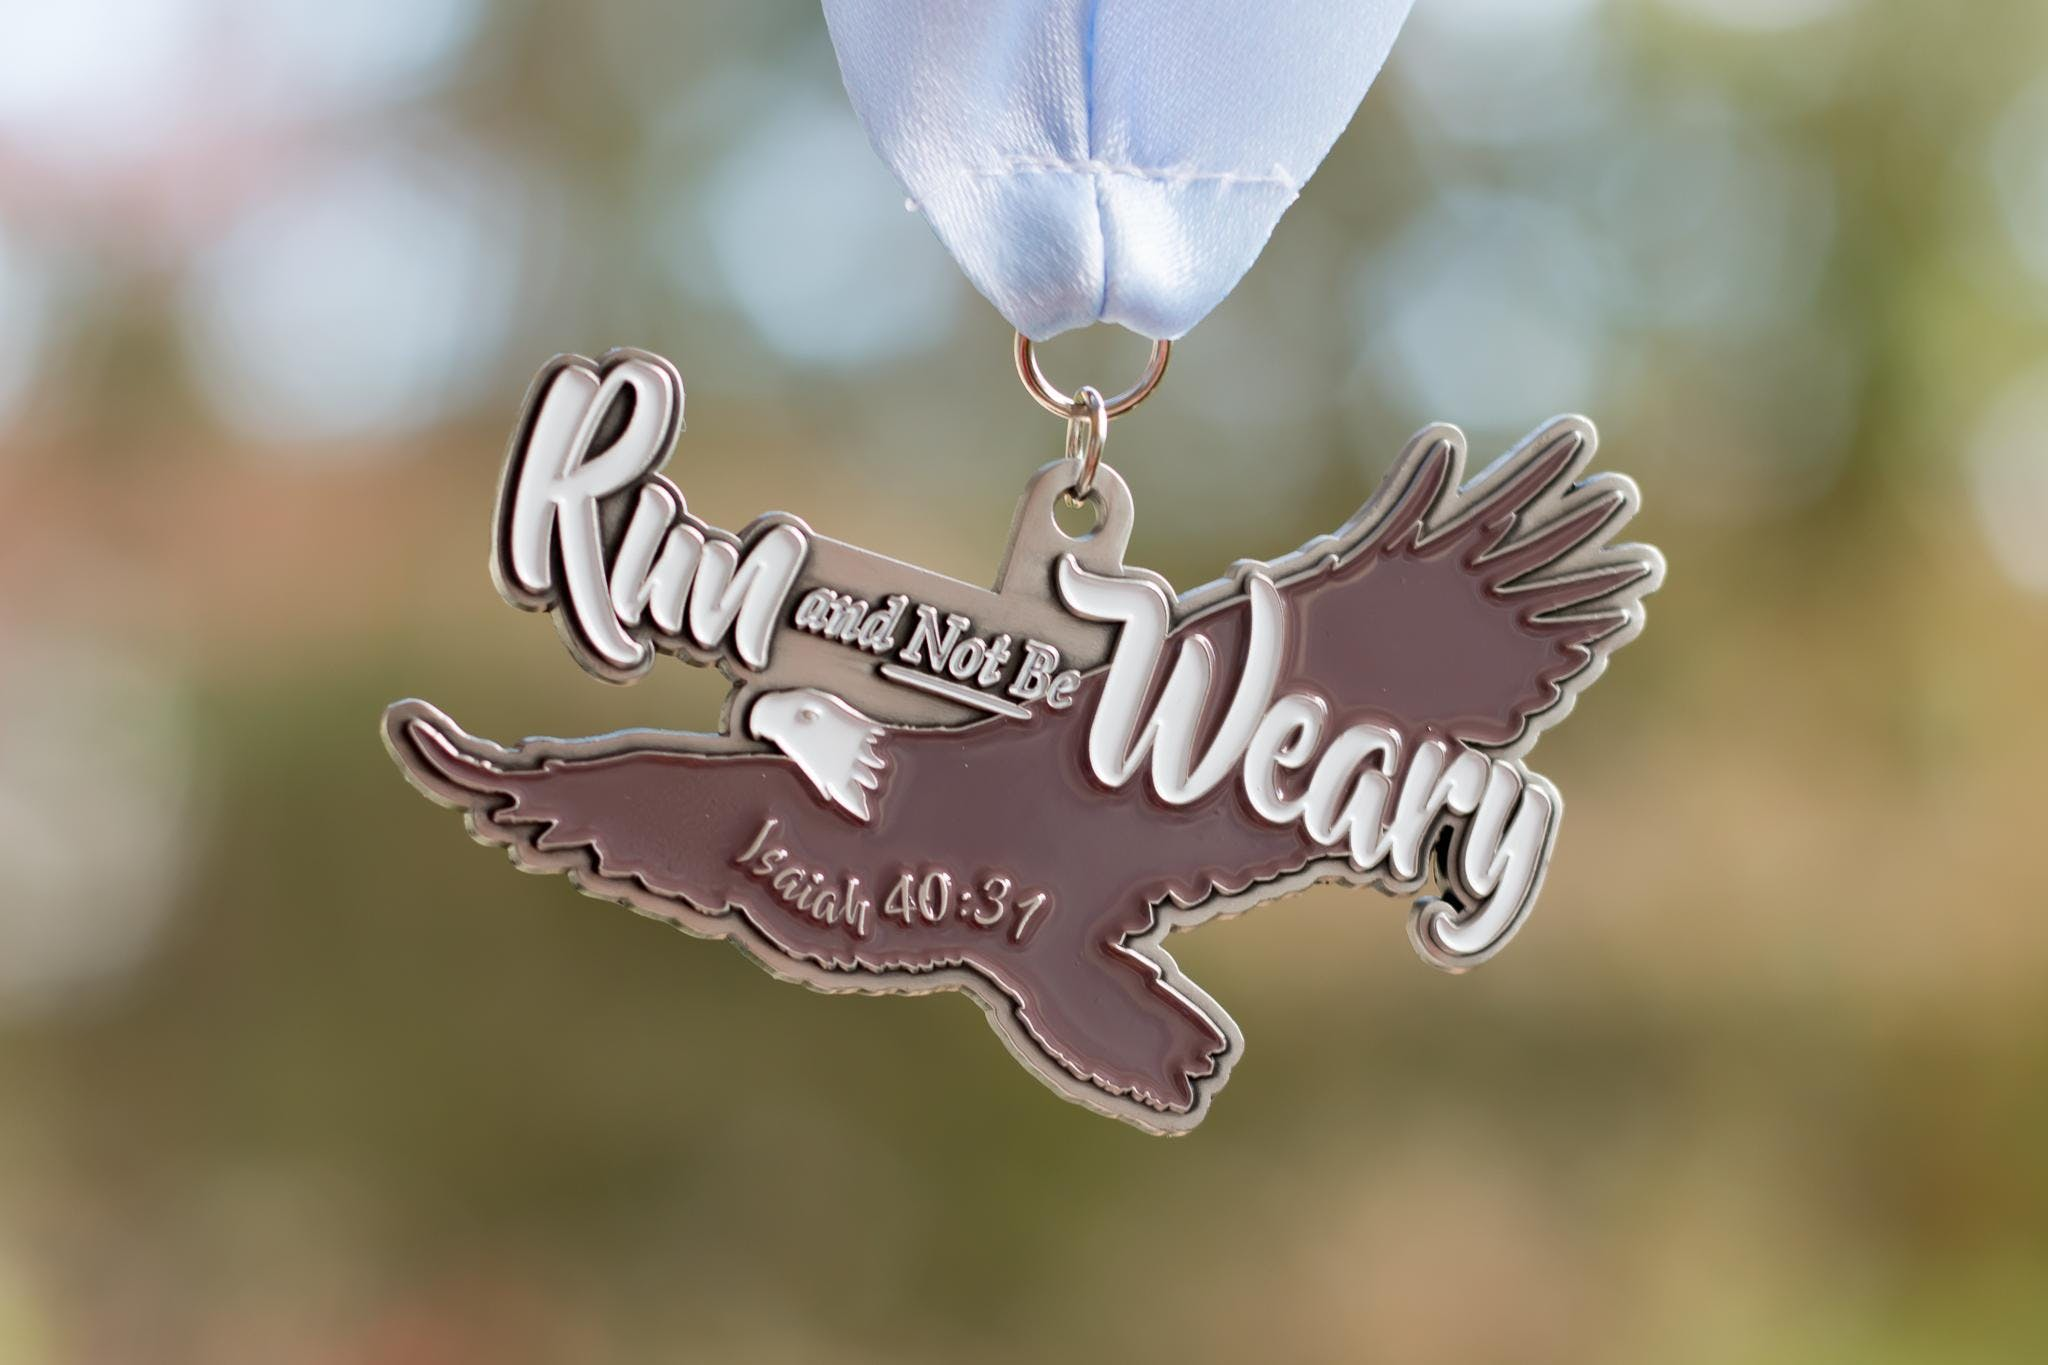 2019 Run and Not Be Weary 1 Mile, 5K, 10K, 13